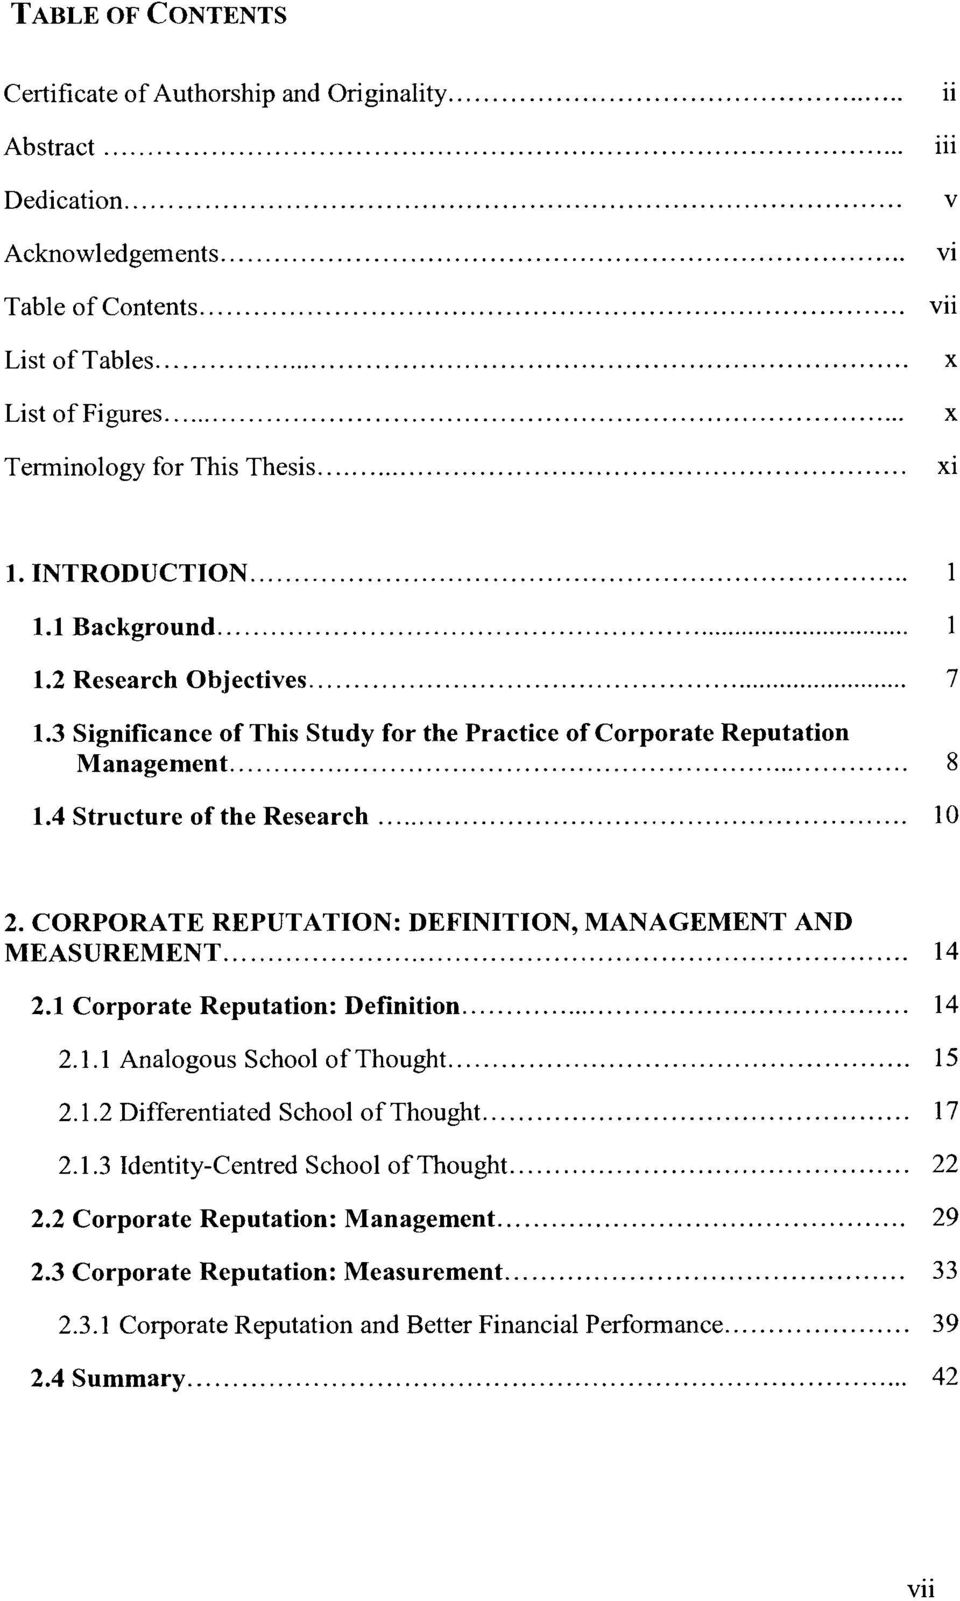 4 Structure of the Research... 10 2. CORPORATE REPUTATION: DEFINITION, MANAGEMENT AND MEASUREMENT... 14 2.1 Corporate Reputation: Definition... 14 2.1.1 Analogous School of Thought... 15 2.1.2 Differentiated School of Thought.